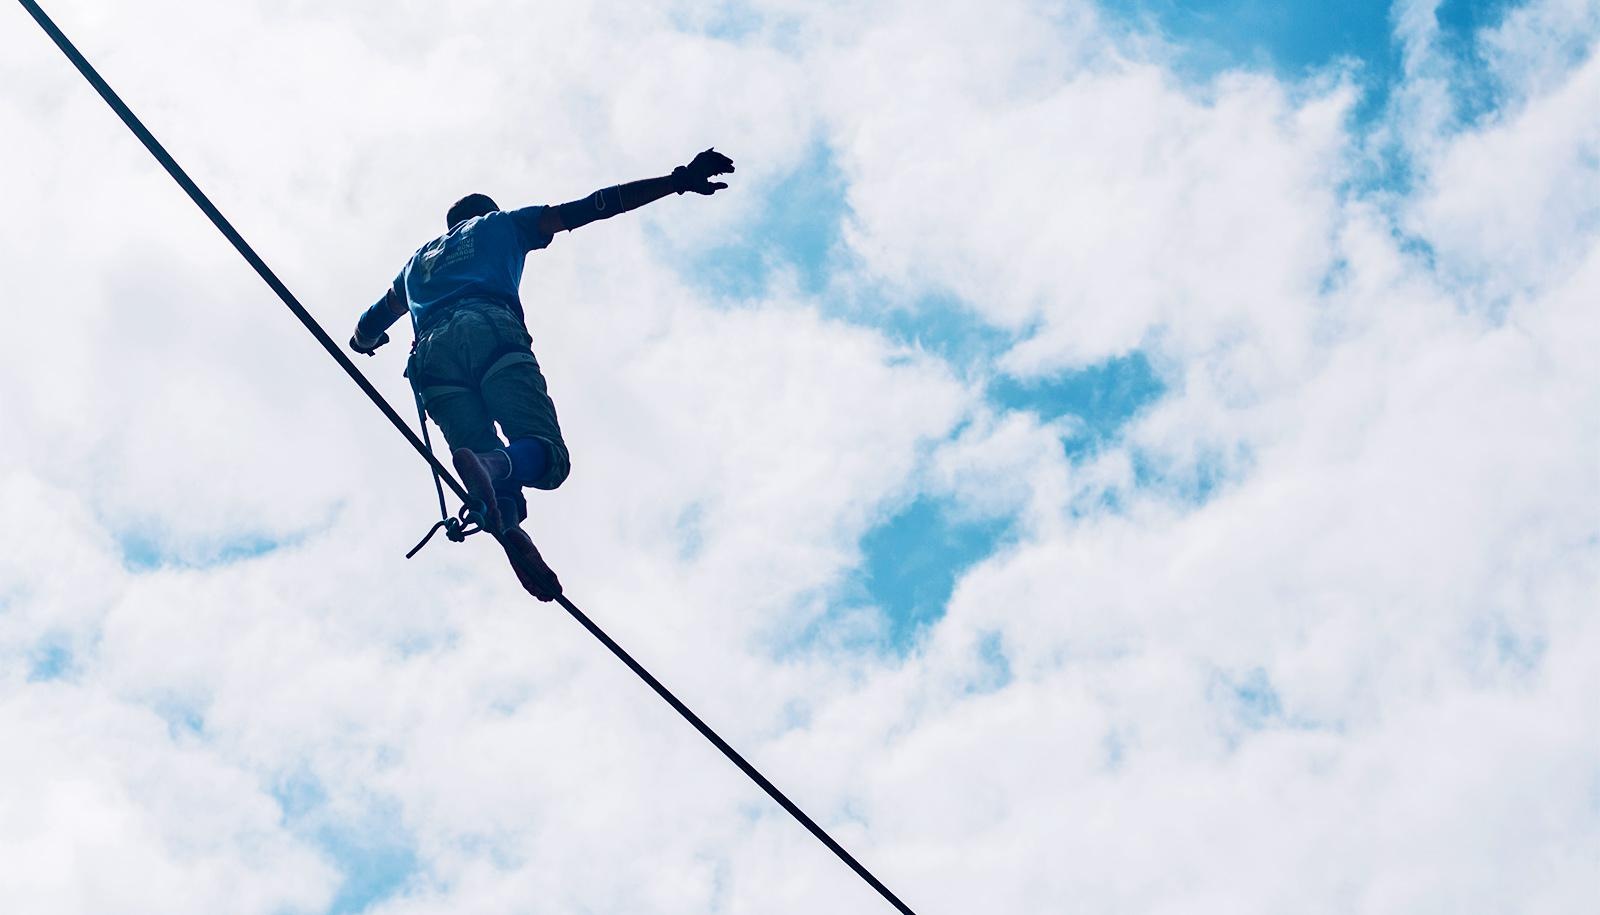 A person walks on a tightrope, balancing themselves as they go, against a cloudy sky